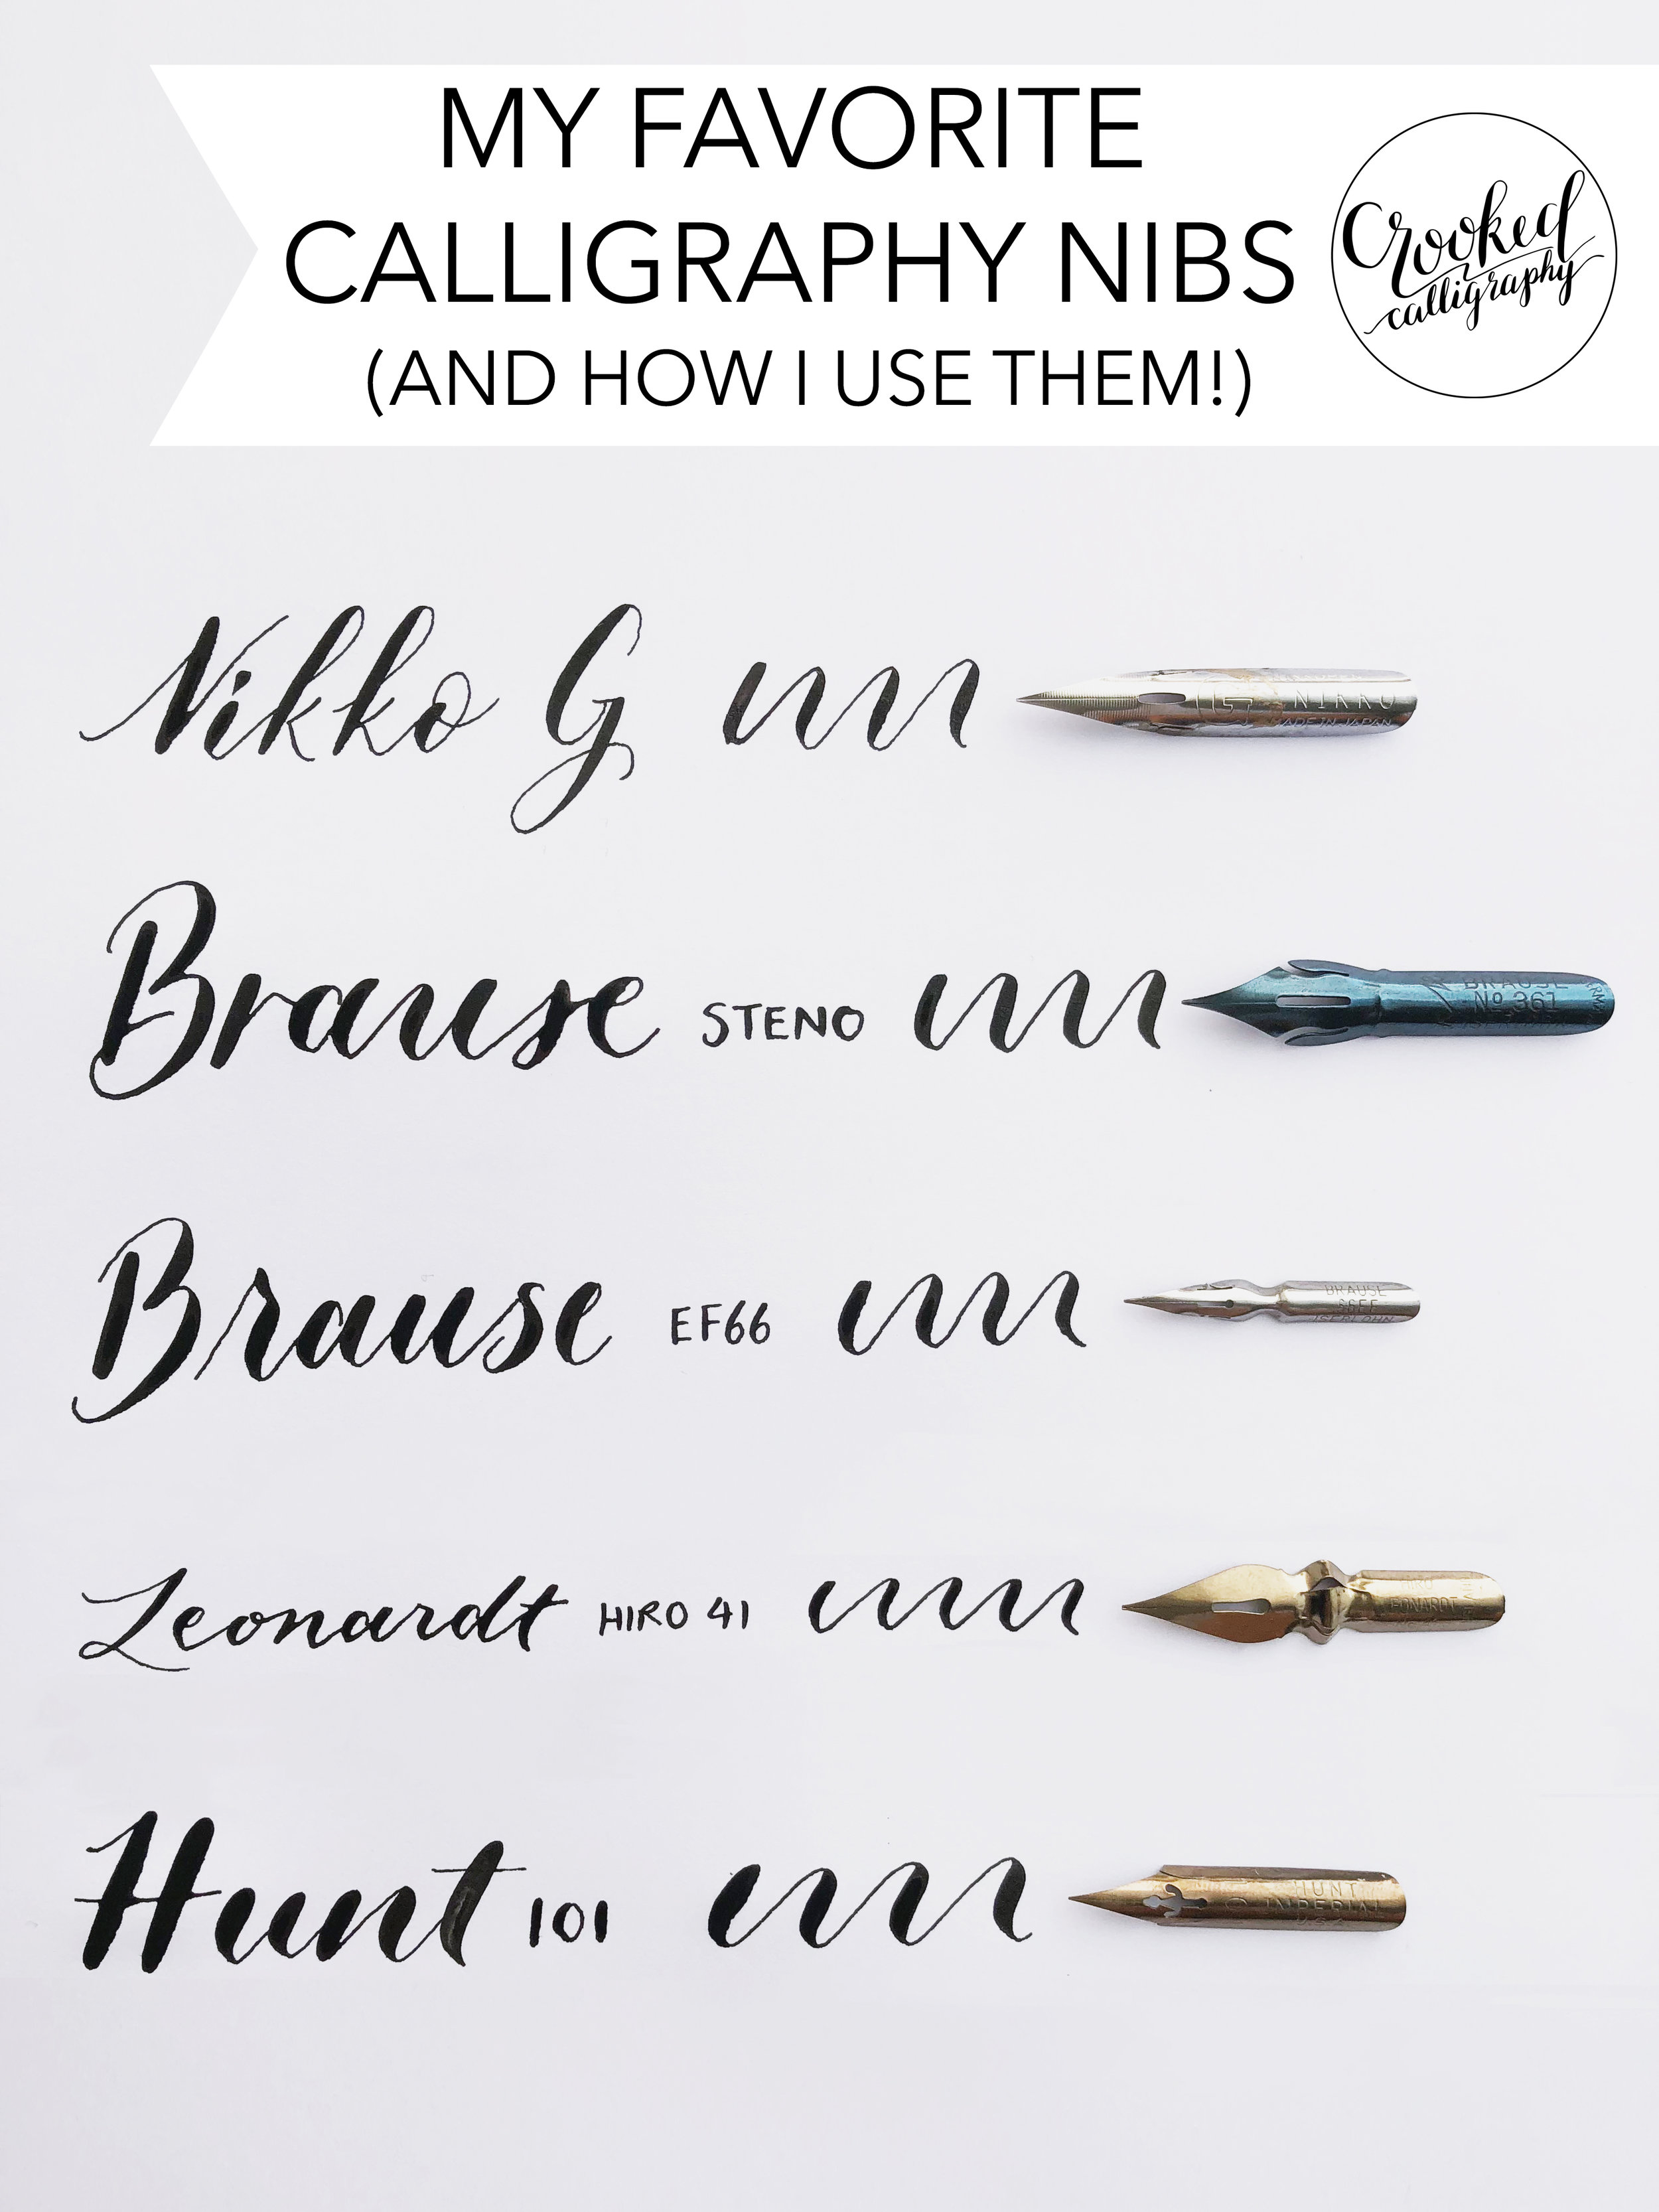 Favorite Calligraphy Nibs for Pointed Pen Calligraphy